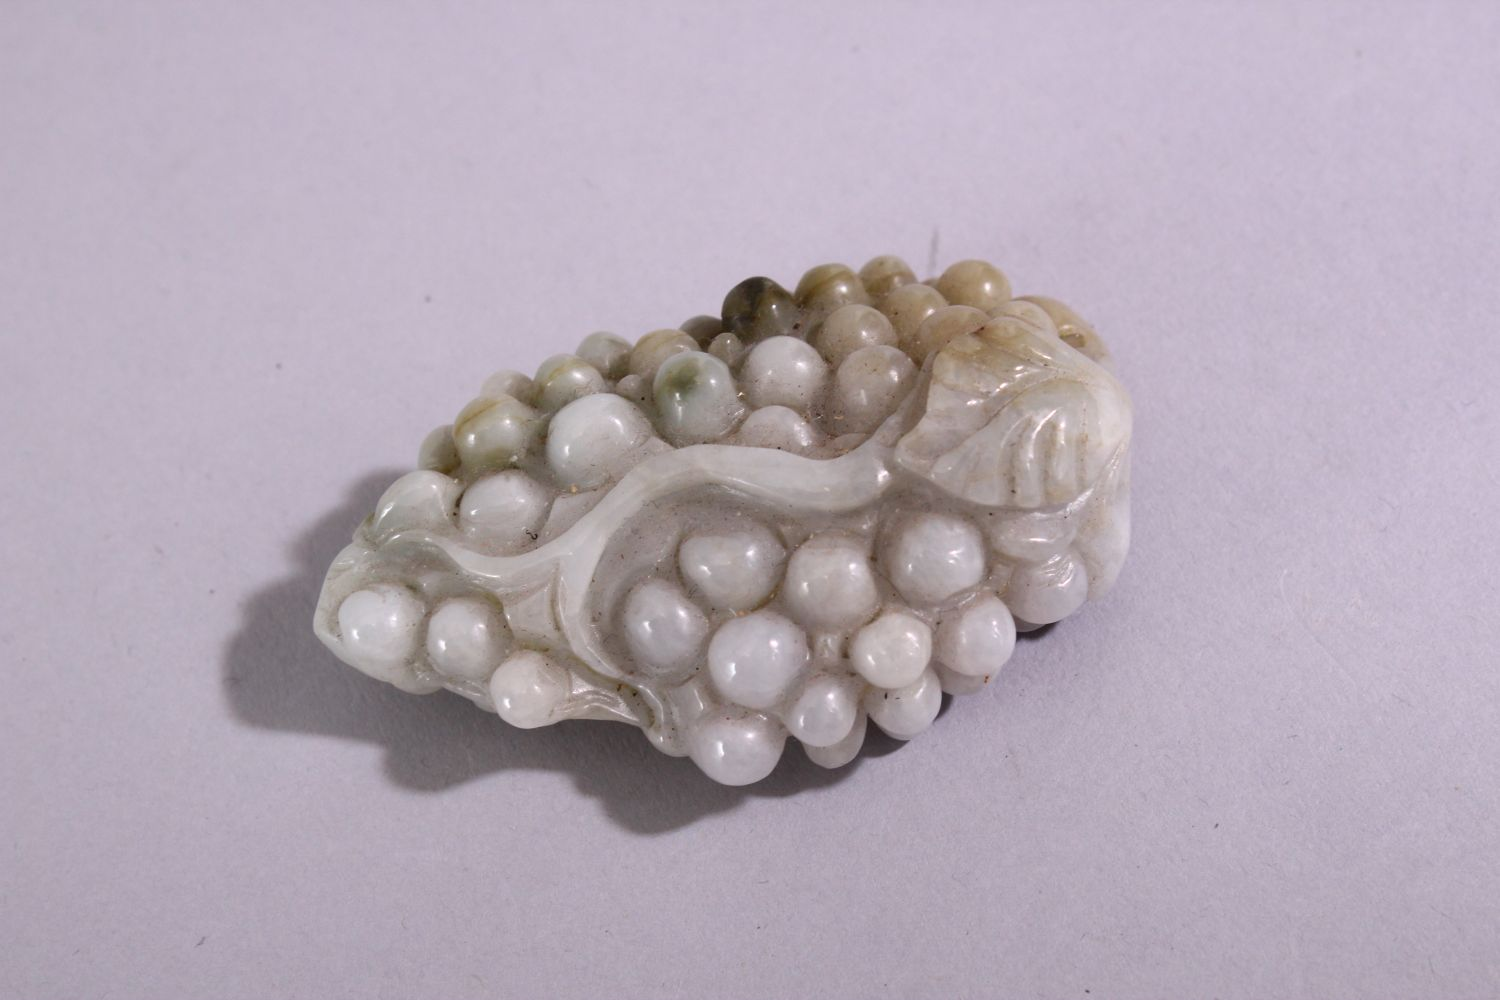 A CHINESE CARVED AND PIERCED JADITE / HARDSTONE AMULET, in the form of a bunch of grapes, 6.5cm x - Image 2 of 3